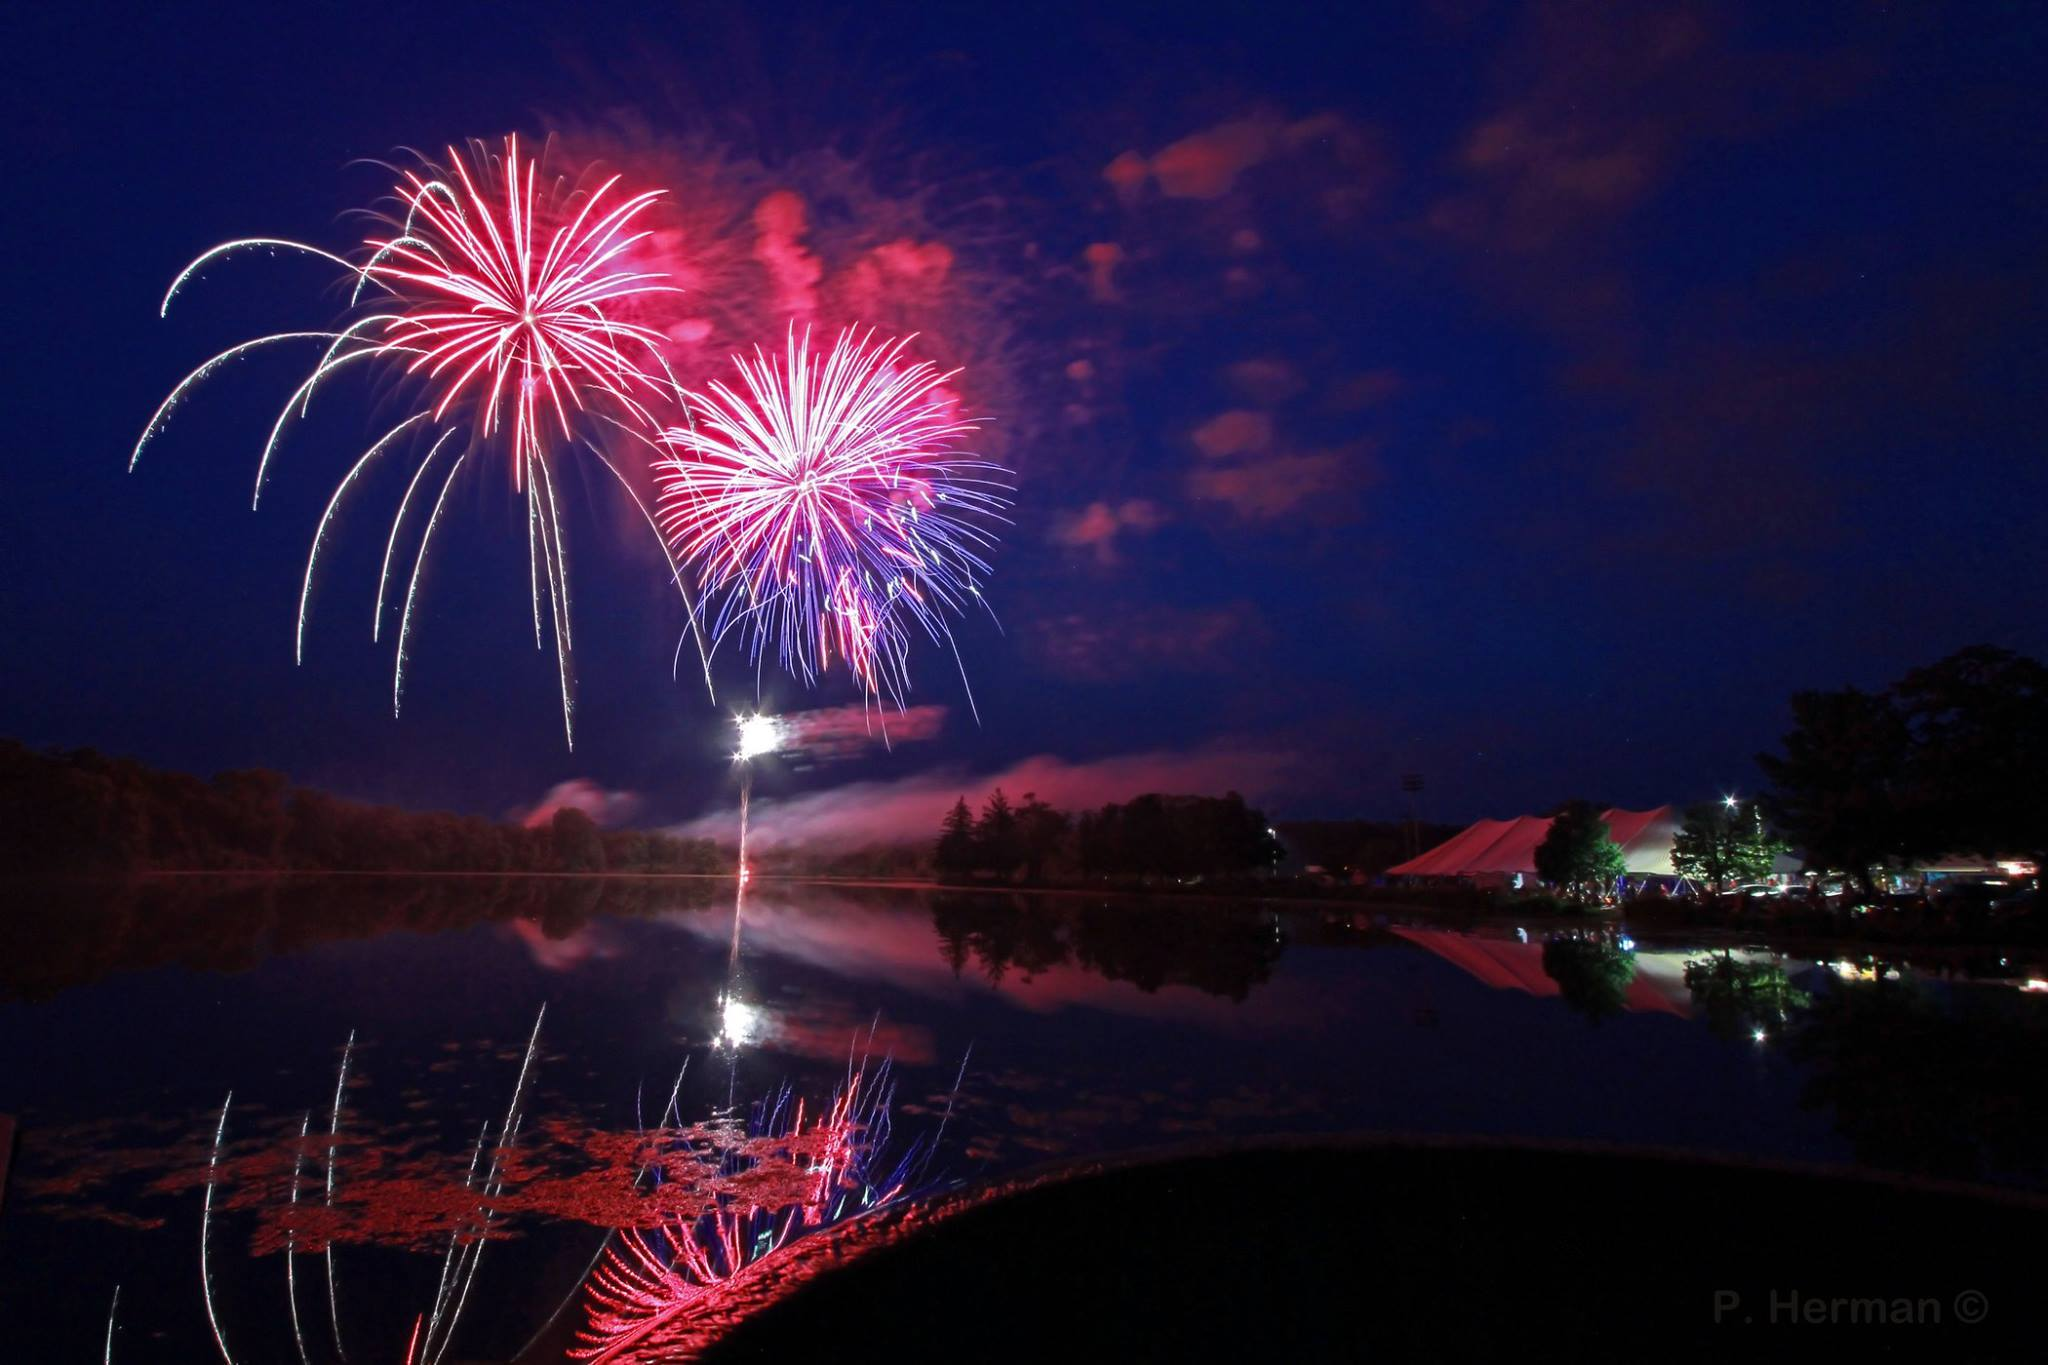 Indiana pike county otwell - The Best 4th Of July Fireworks Shows In Indiana In 2017 Cities Times Dates